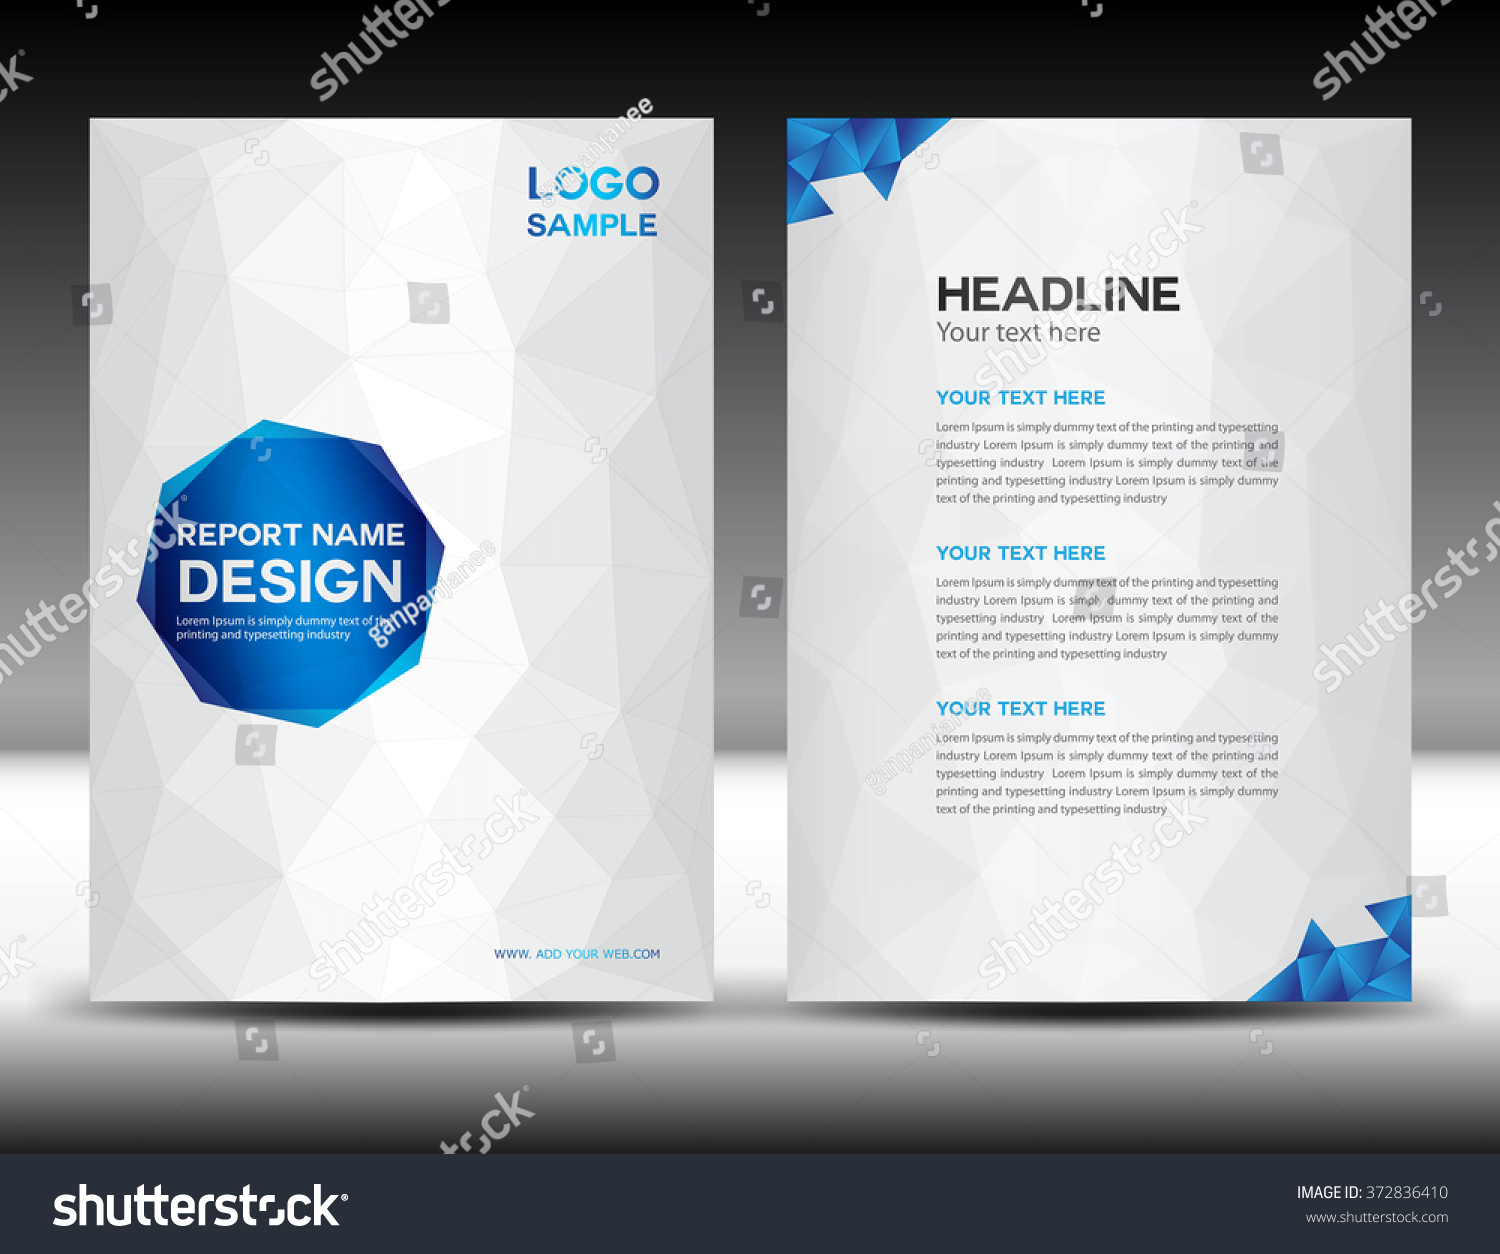 photography company profile sample pdf best resume templates photography company profile sample pdf artists vic firth white annual report template brochure flyer cover design